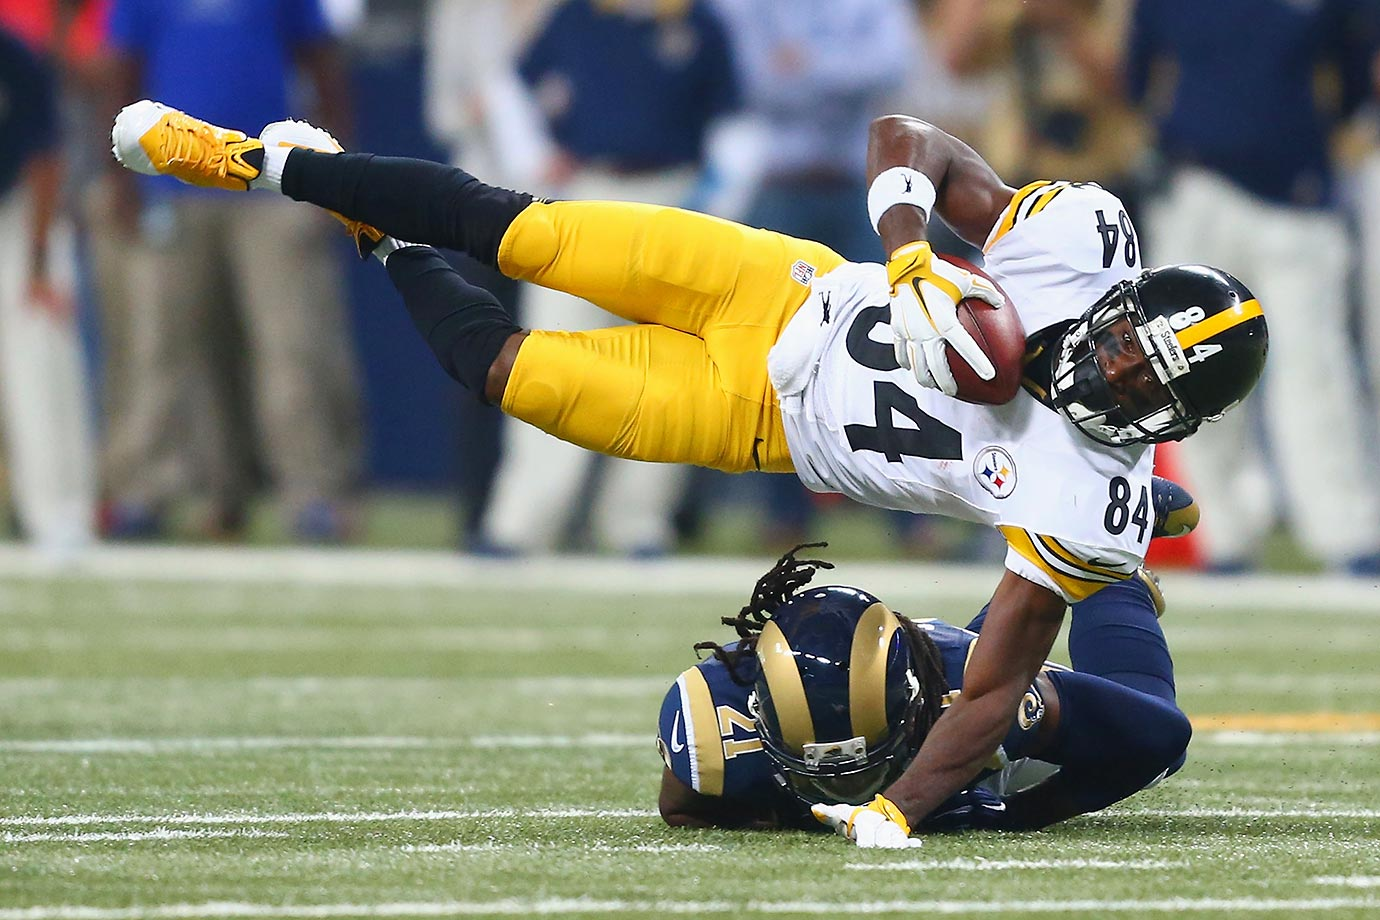 Antonio Brown of the Pittsburgh Steelers show a little magic trick in a game against the Rams.